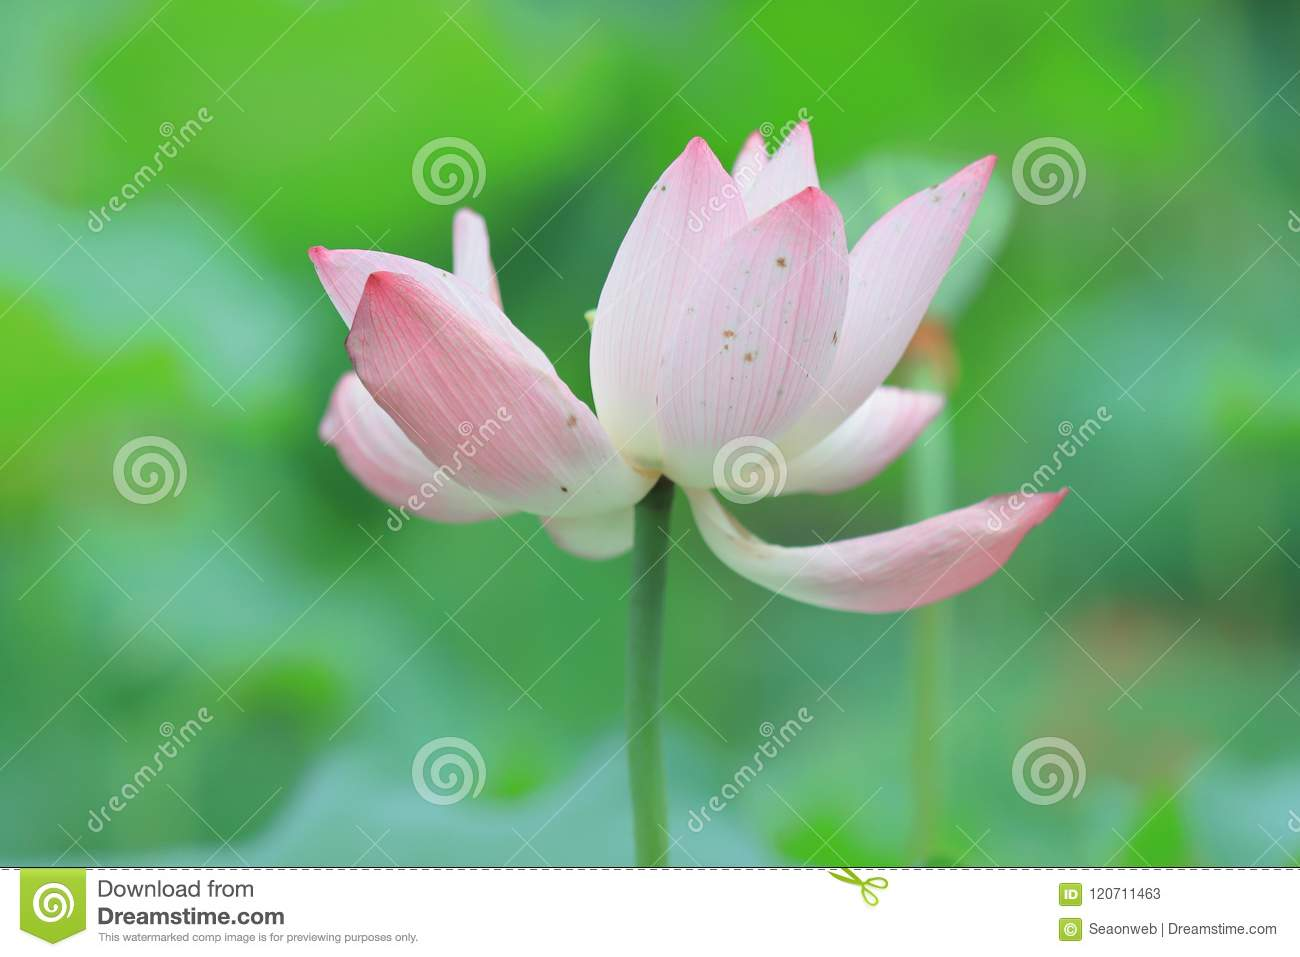 A lotus flower blossom at summer time stock image image of lotus a lotus flower blossom at summer time izmirmasajfo